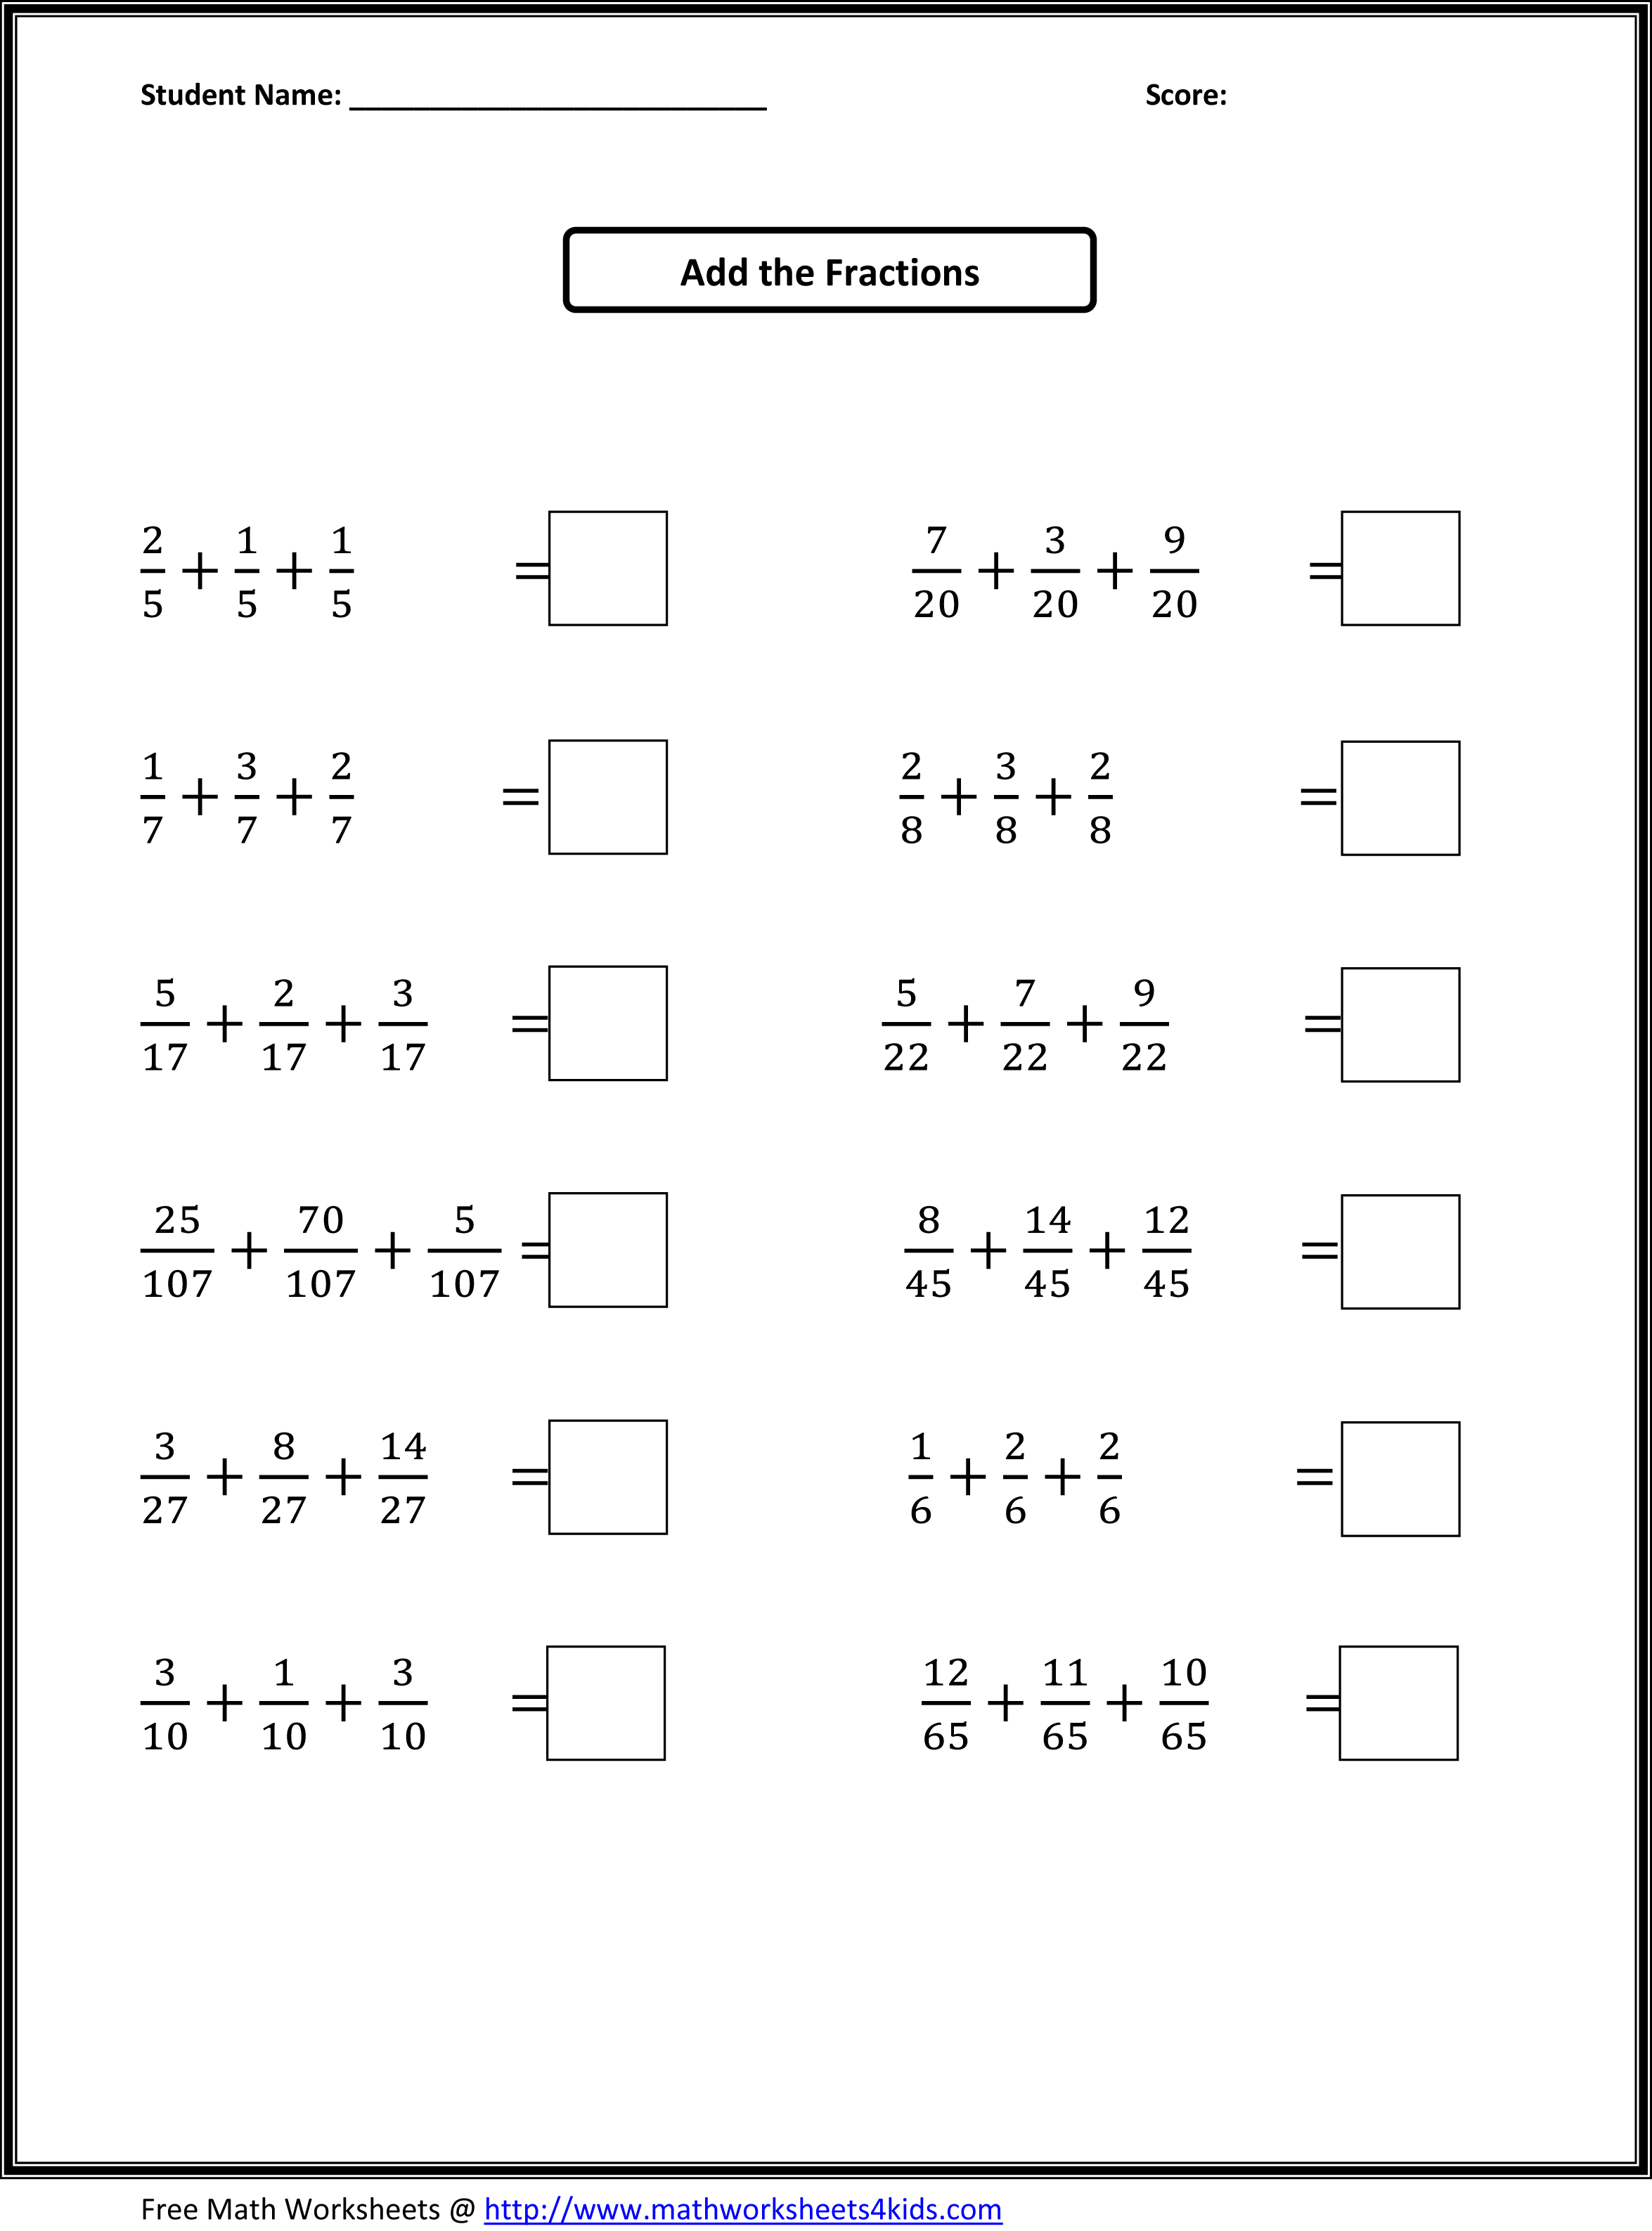 math worksheet : high quality equivalent fractions worksheets for 4th grade photos : Equivalent Fraction Worksheets 4th Grade